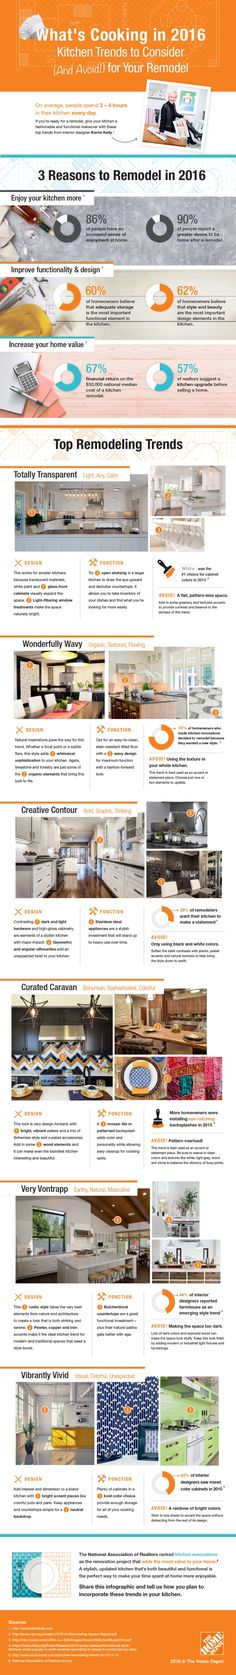 Kitchen Trends to Consider (and Avoid) for Your Remodel infographic